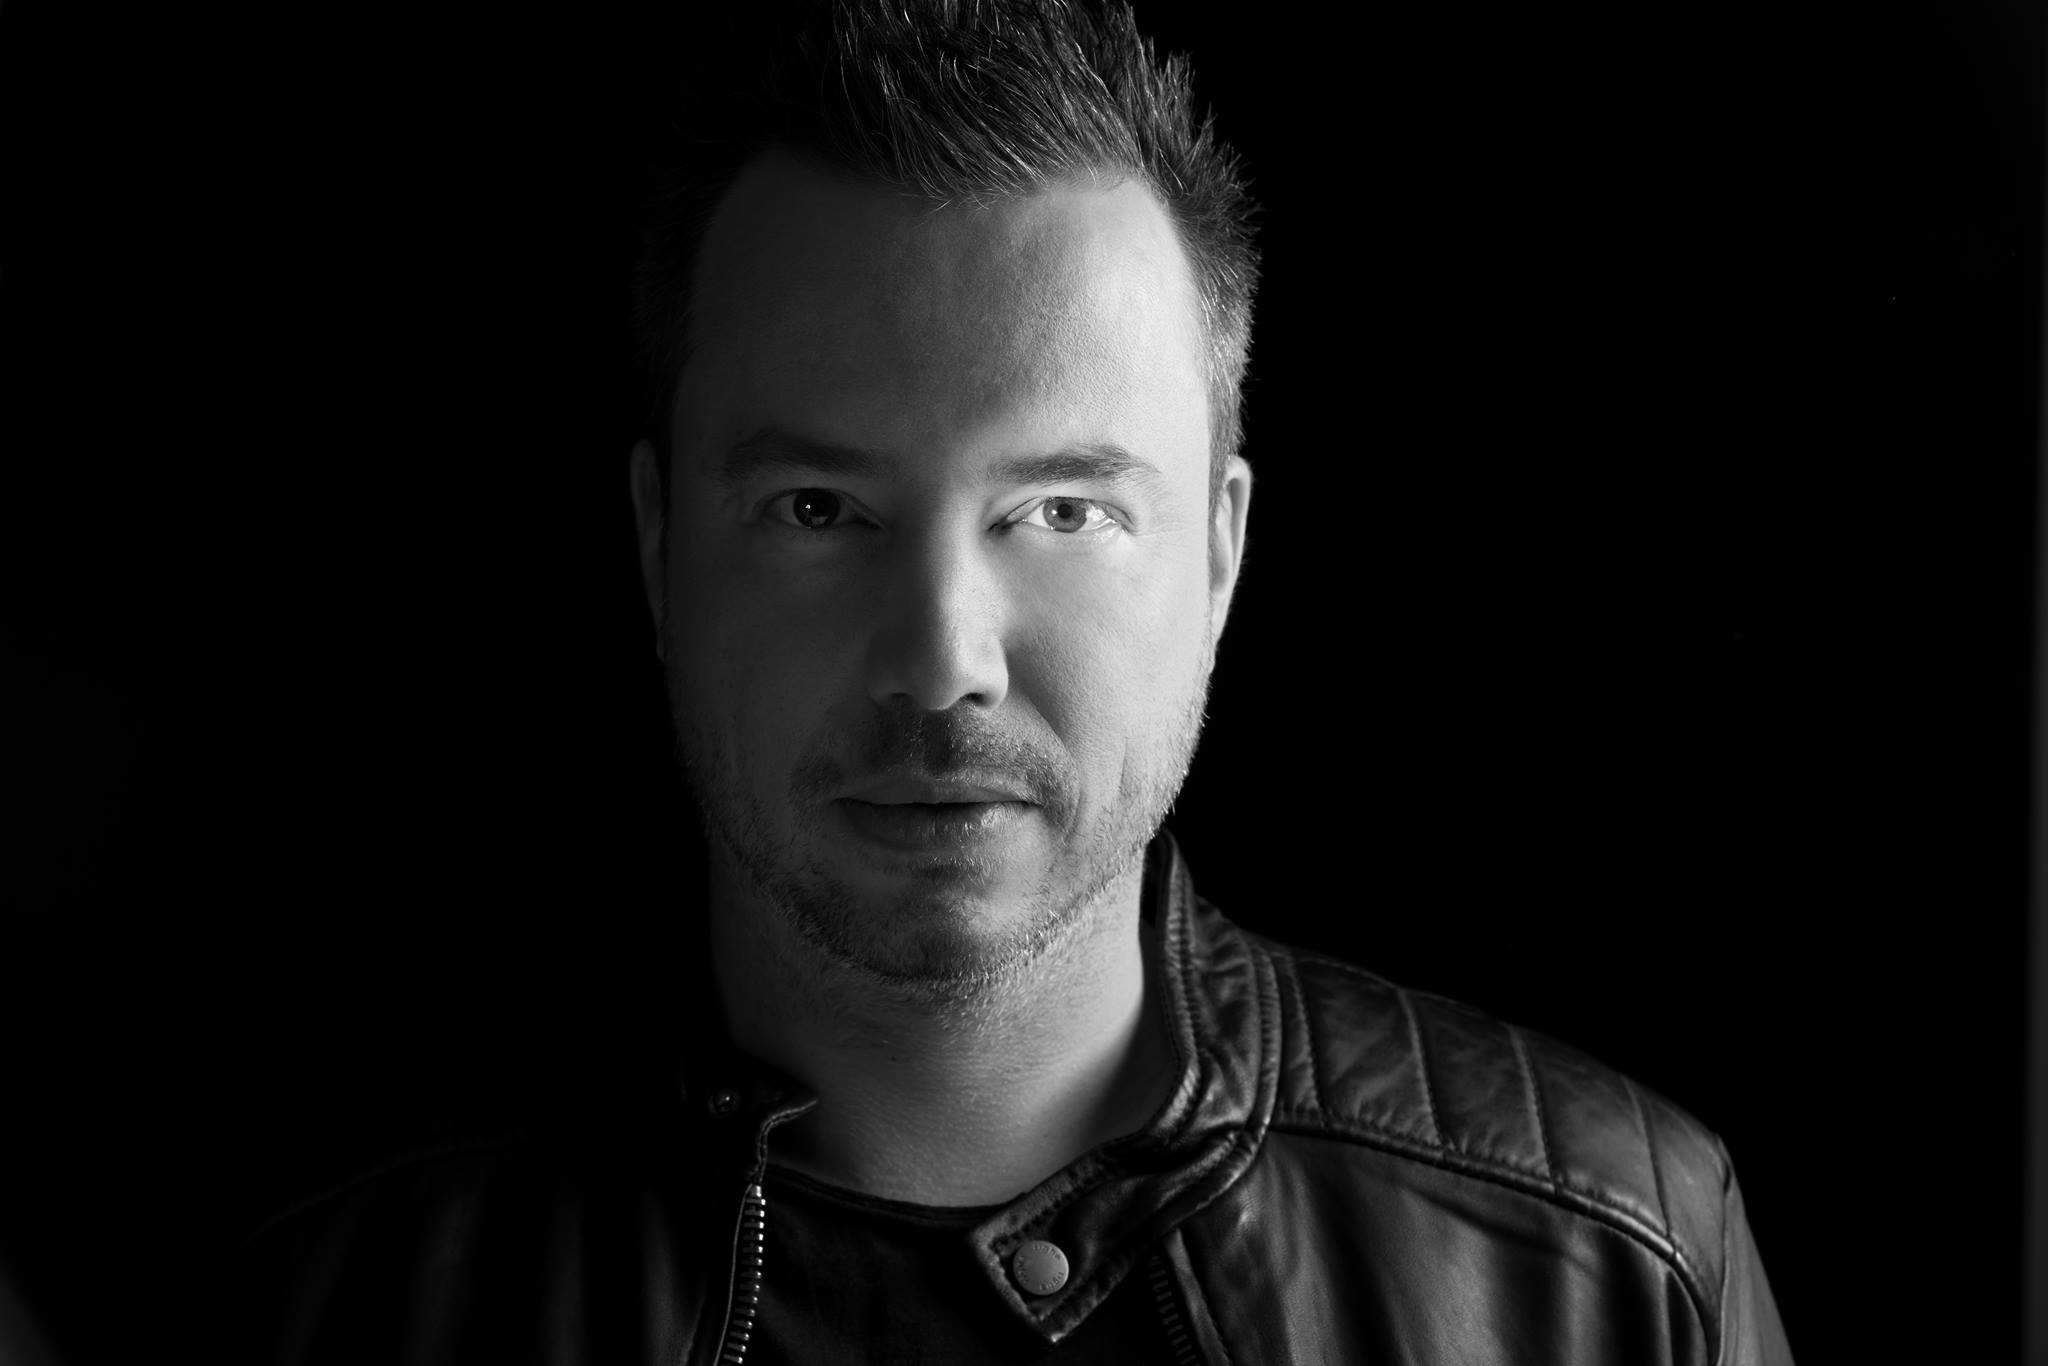 Sander Van Doorn, Courtesy of the Artist